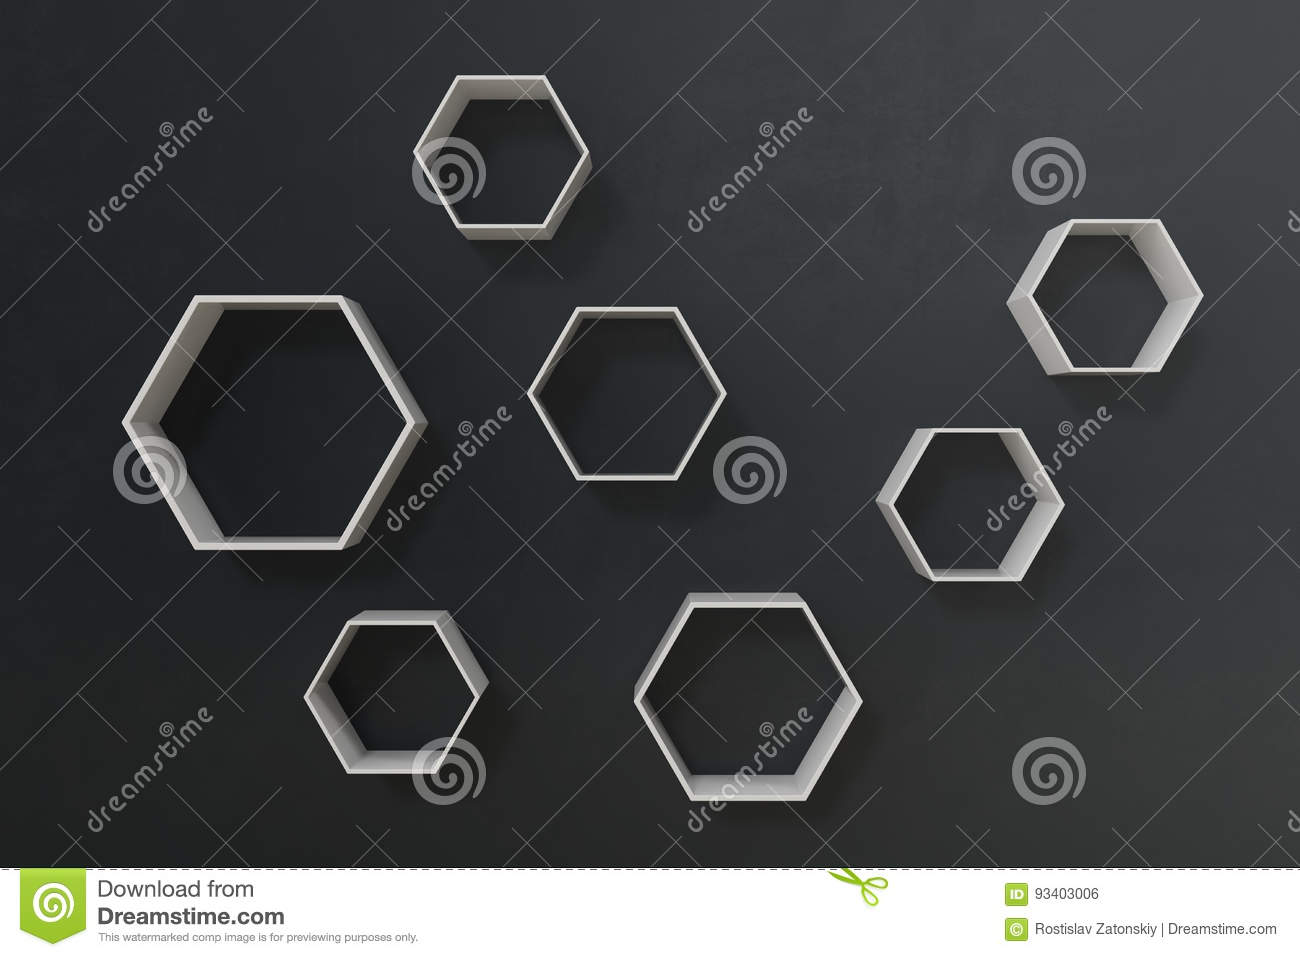 Empty Dark Or Black Wall With Hexagon Shelves On The Wall 3d Rendering Stock Photo Image Of Display Background 93403006